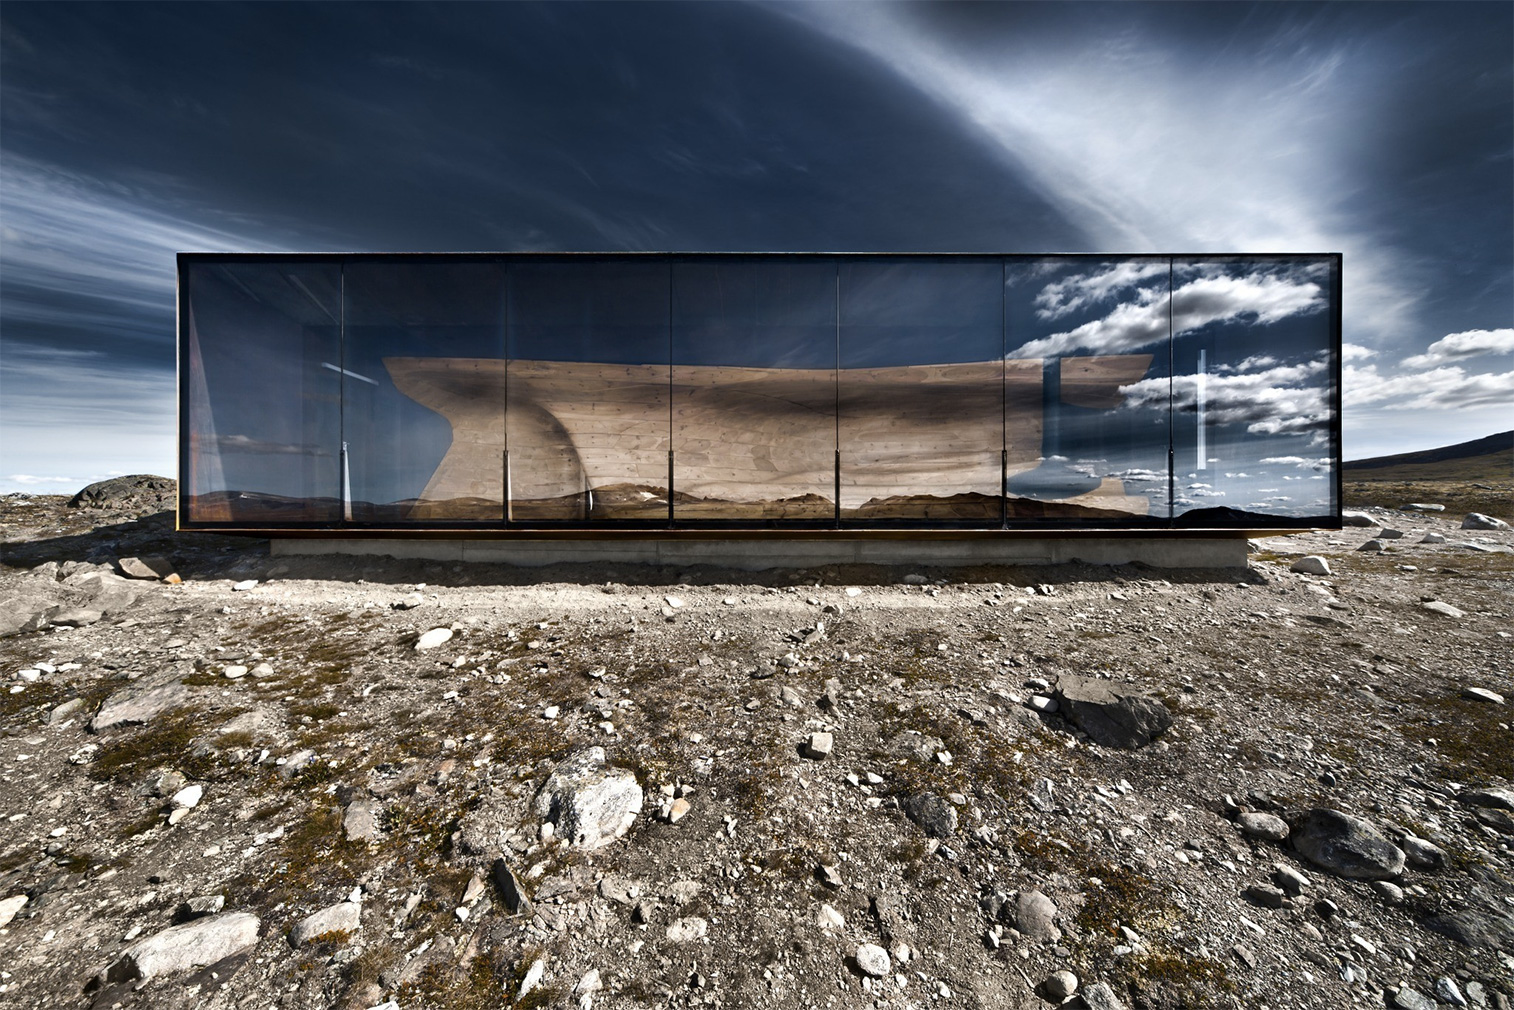 Norwegian Wild Reindeer Centre Pavilion by Snøhetta. Photography: Ketil Jacobsen